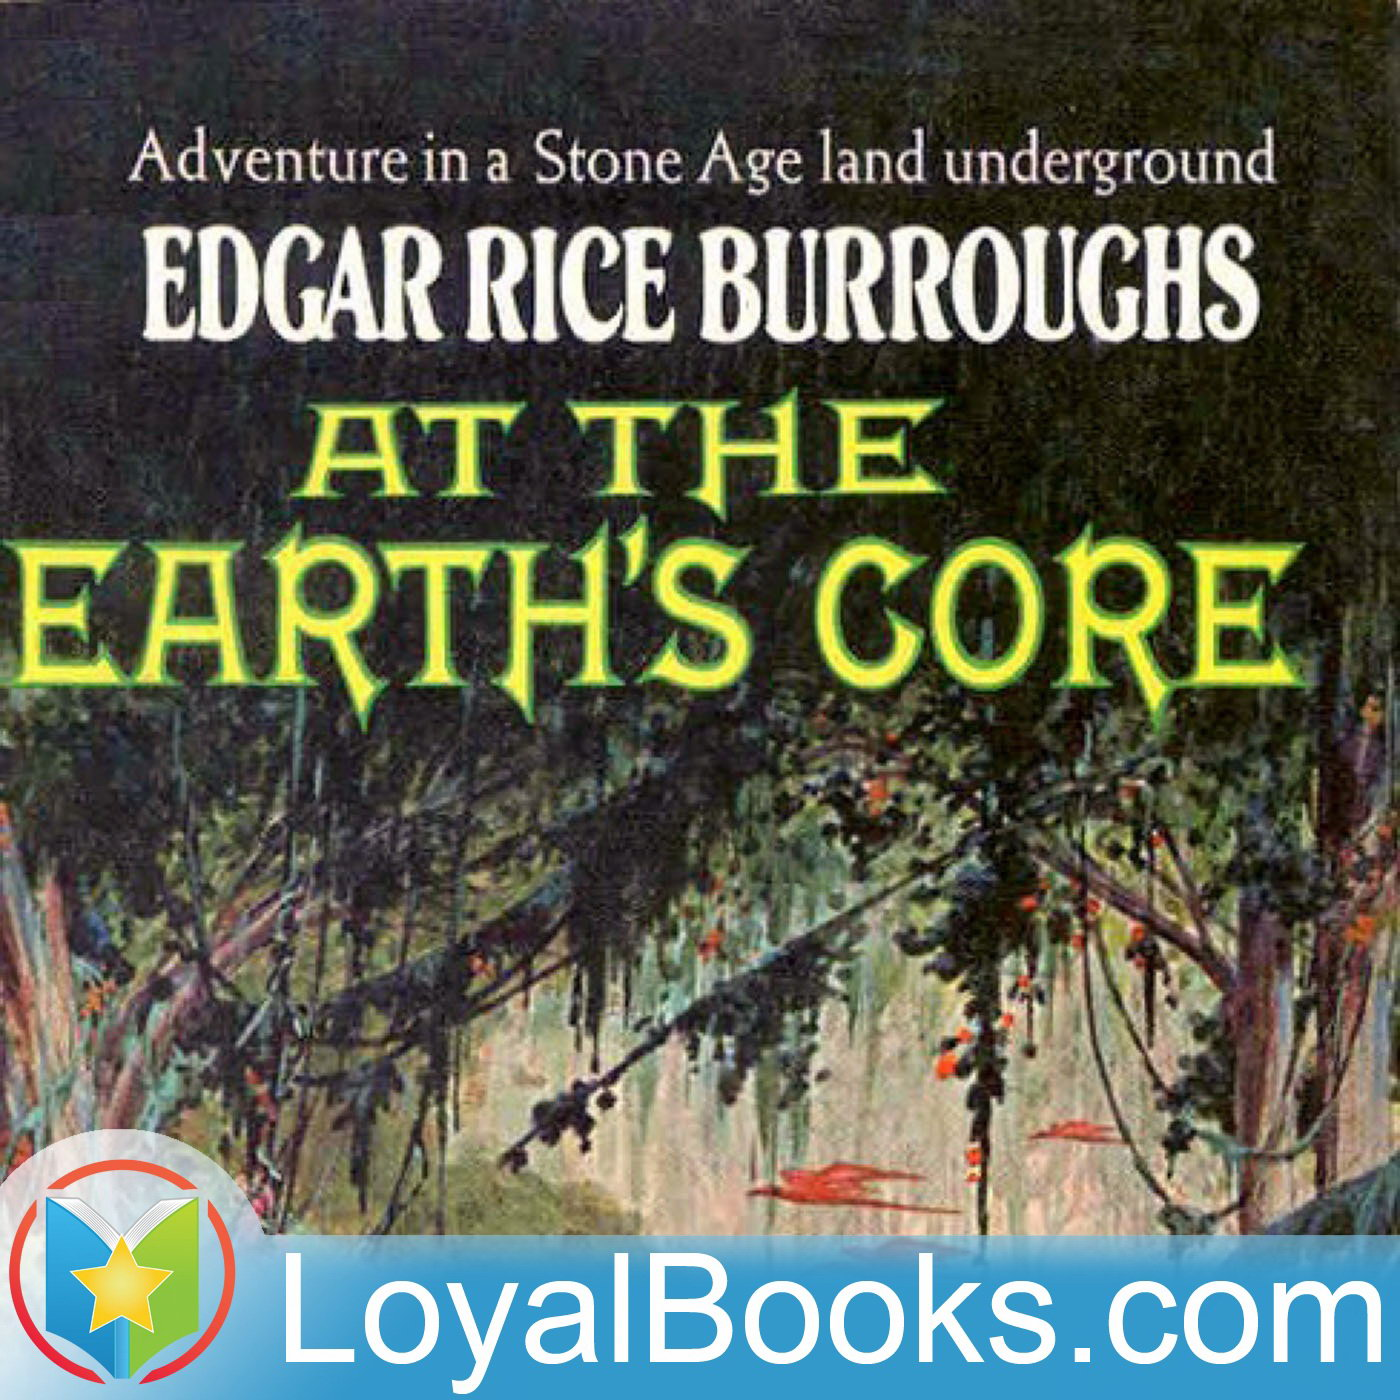 <![CDATA[At the Earth's Core by Edgar Rice Burroughs]]>